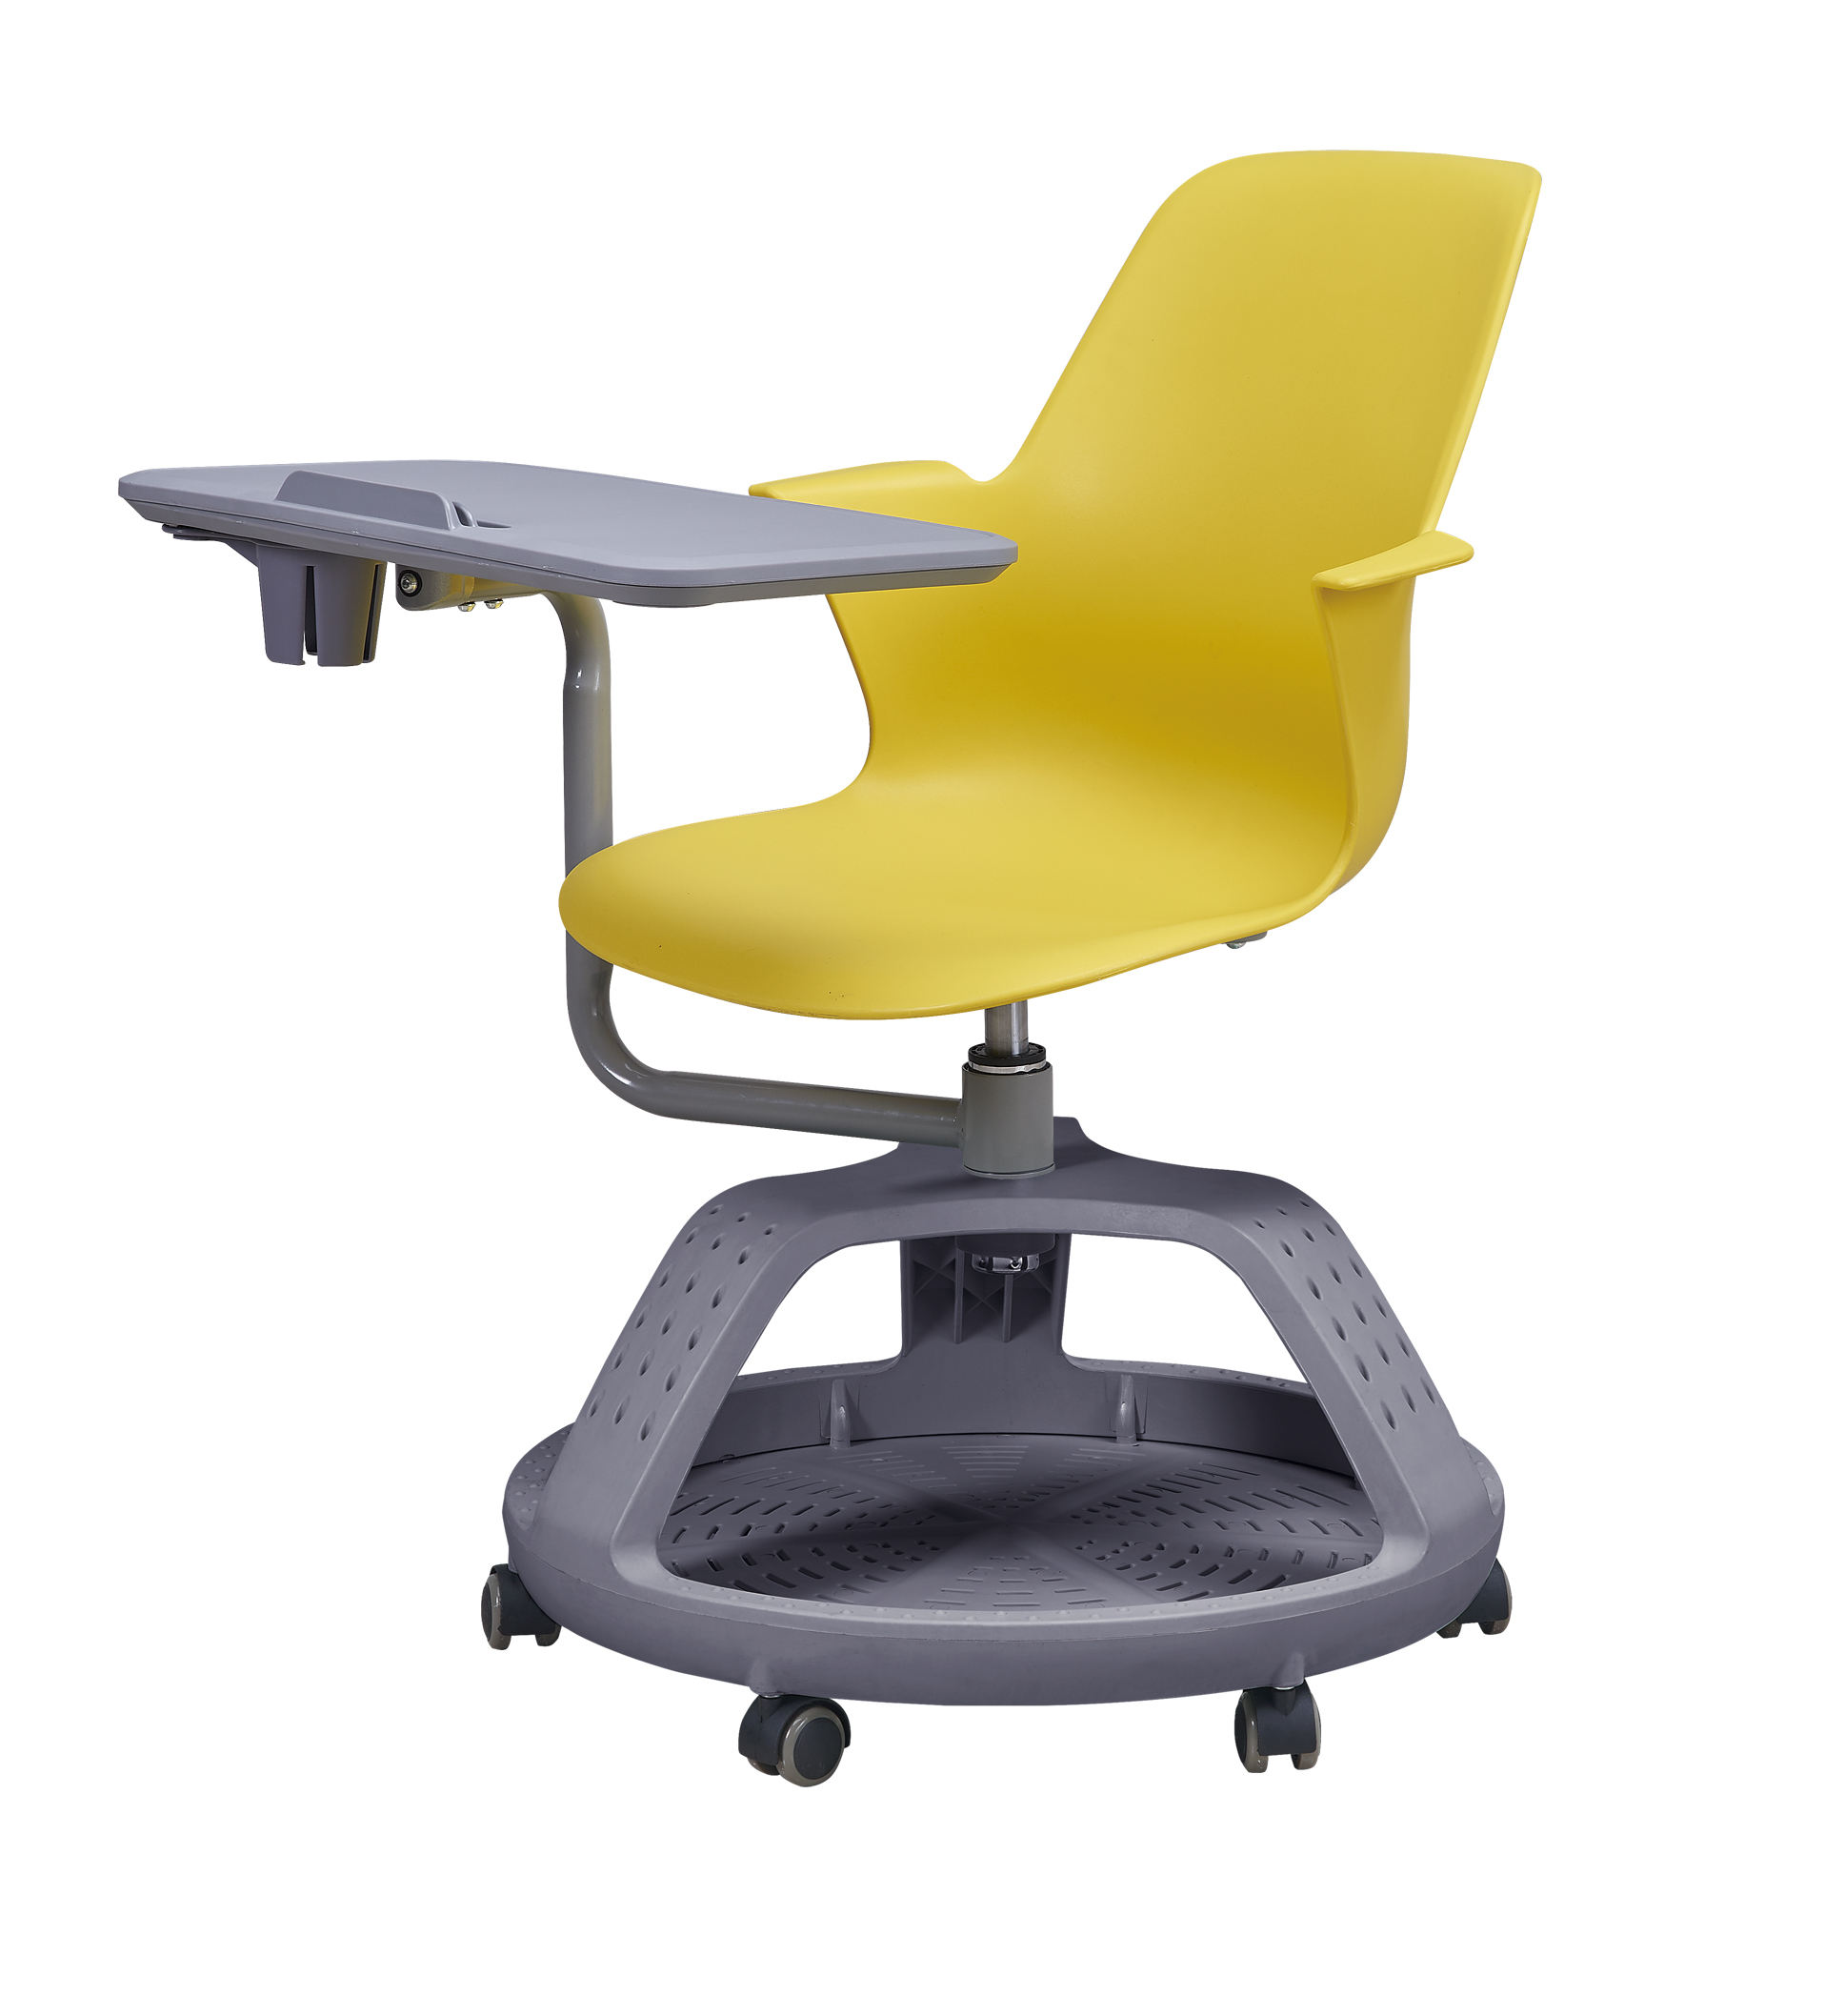 2020 Most Popular Node Chair Desk/ Classroom Chair Price/ School Furniture